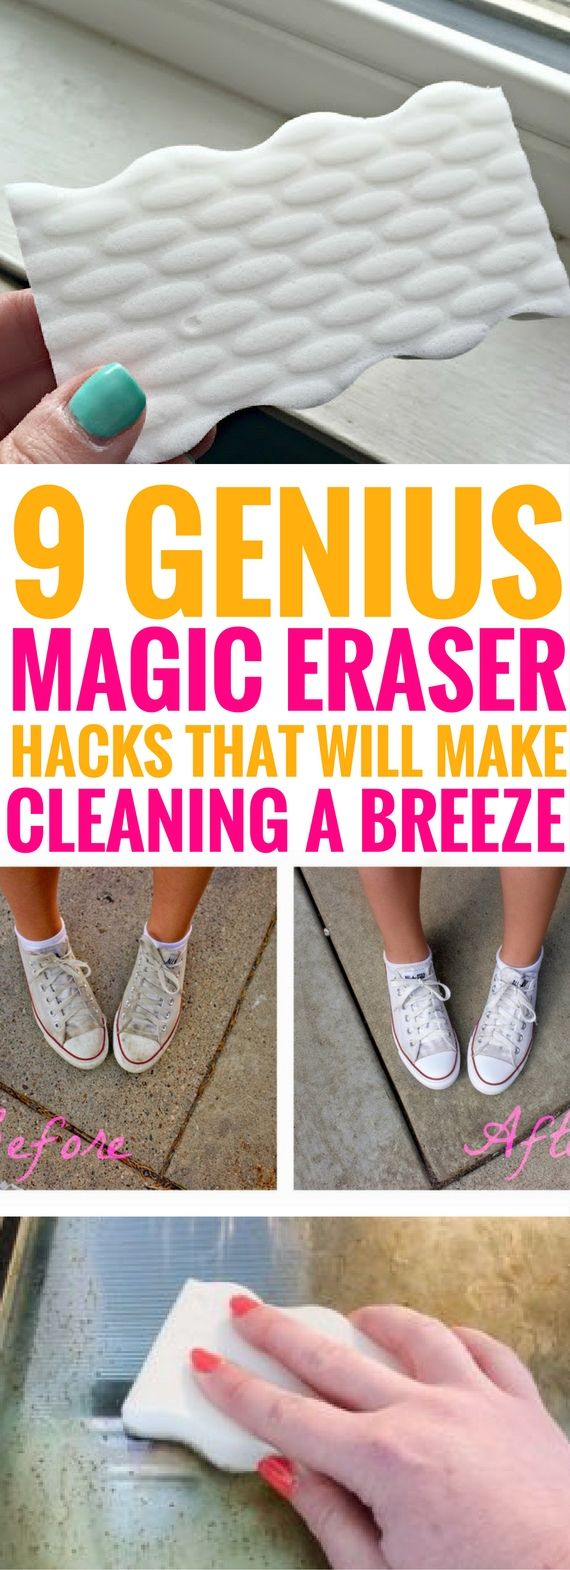 9 Genius Magic Eraser Hacks That Are